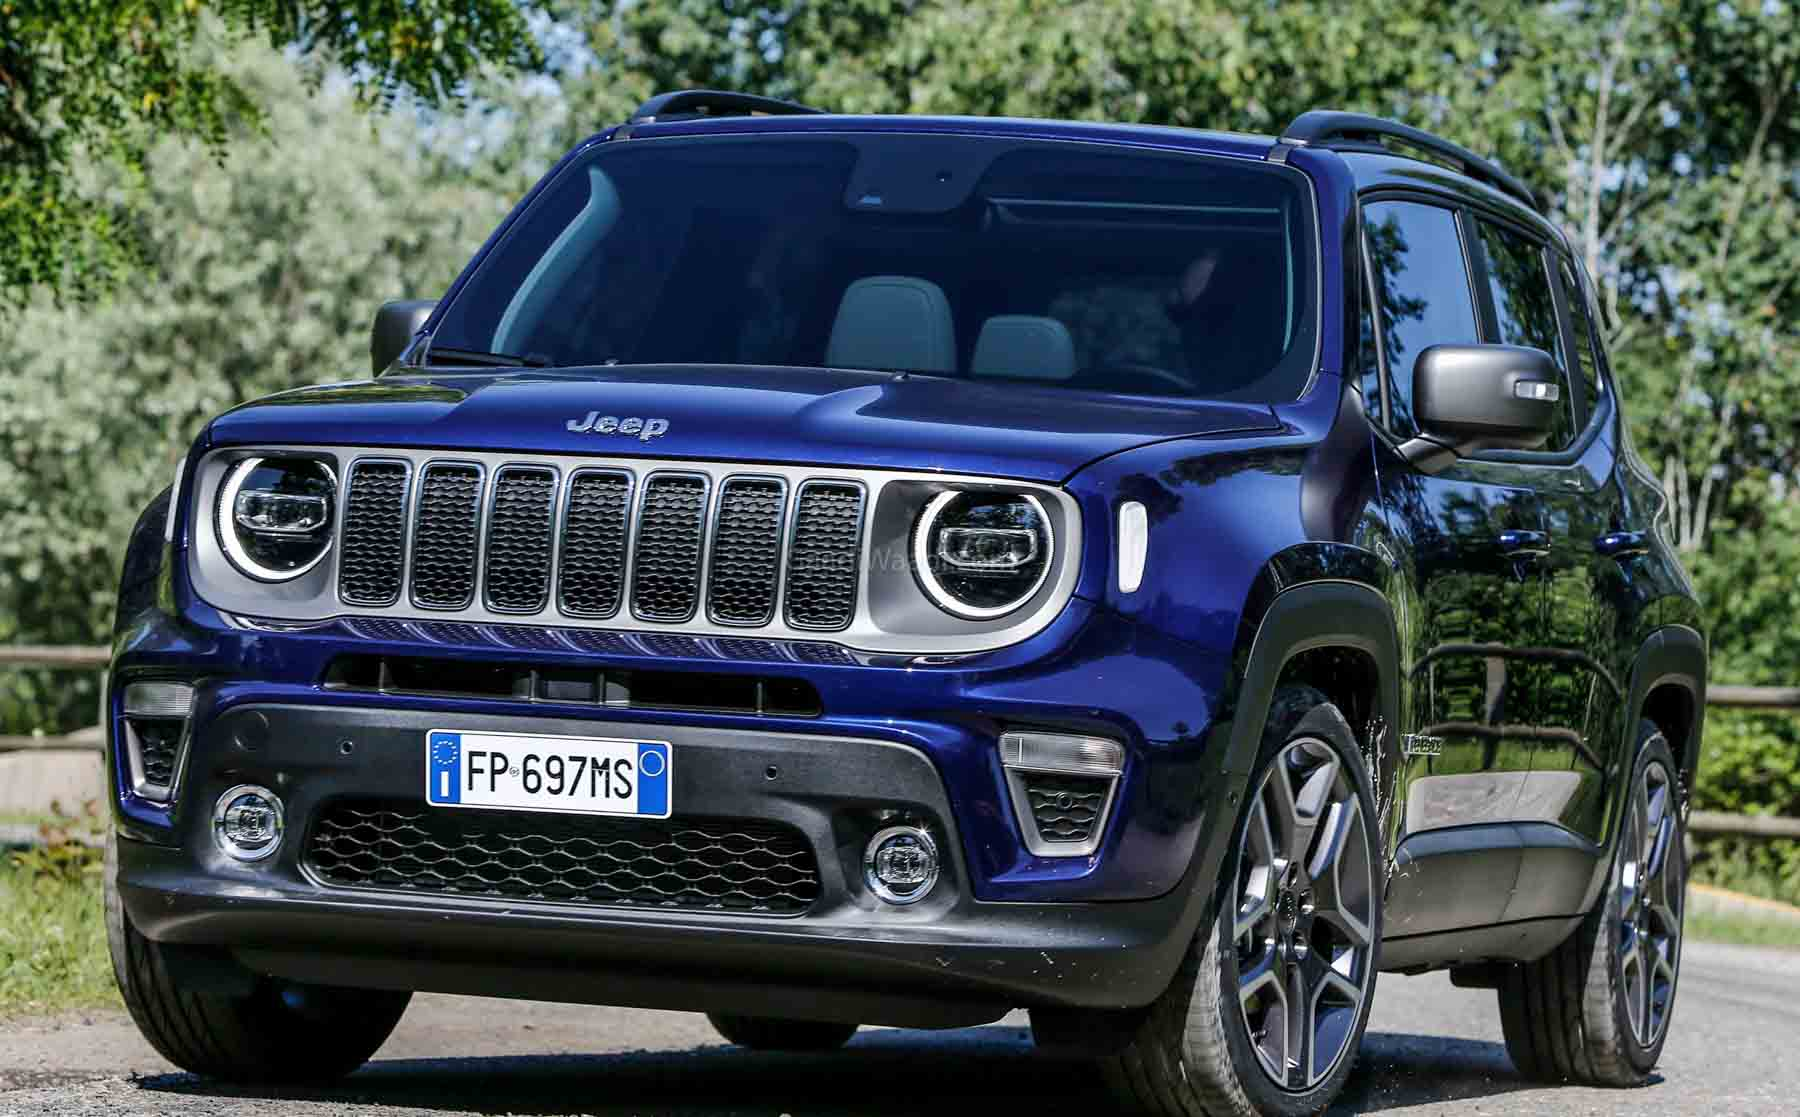 Jeep India To Launch 4 New Models Over The Next 18 Months - GaadiWaadi.com